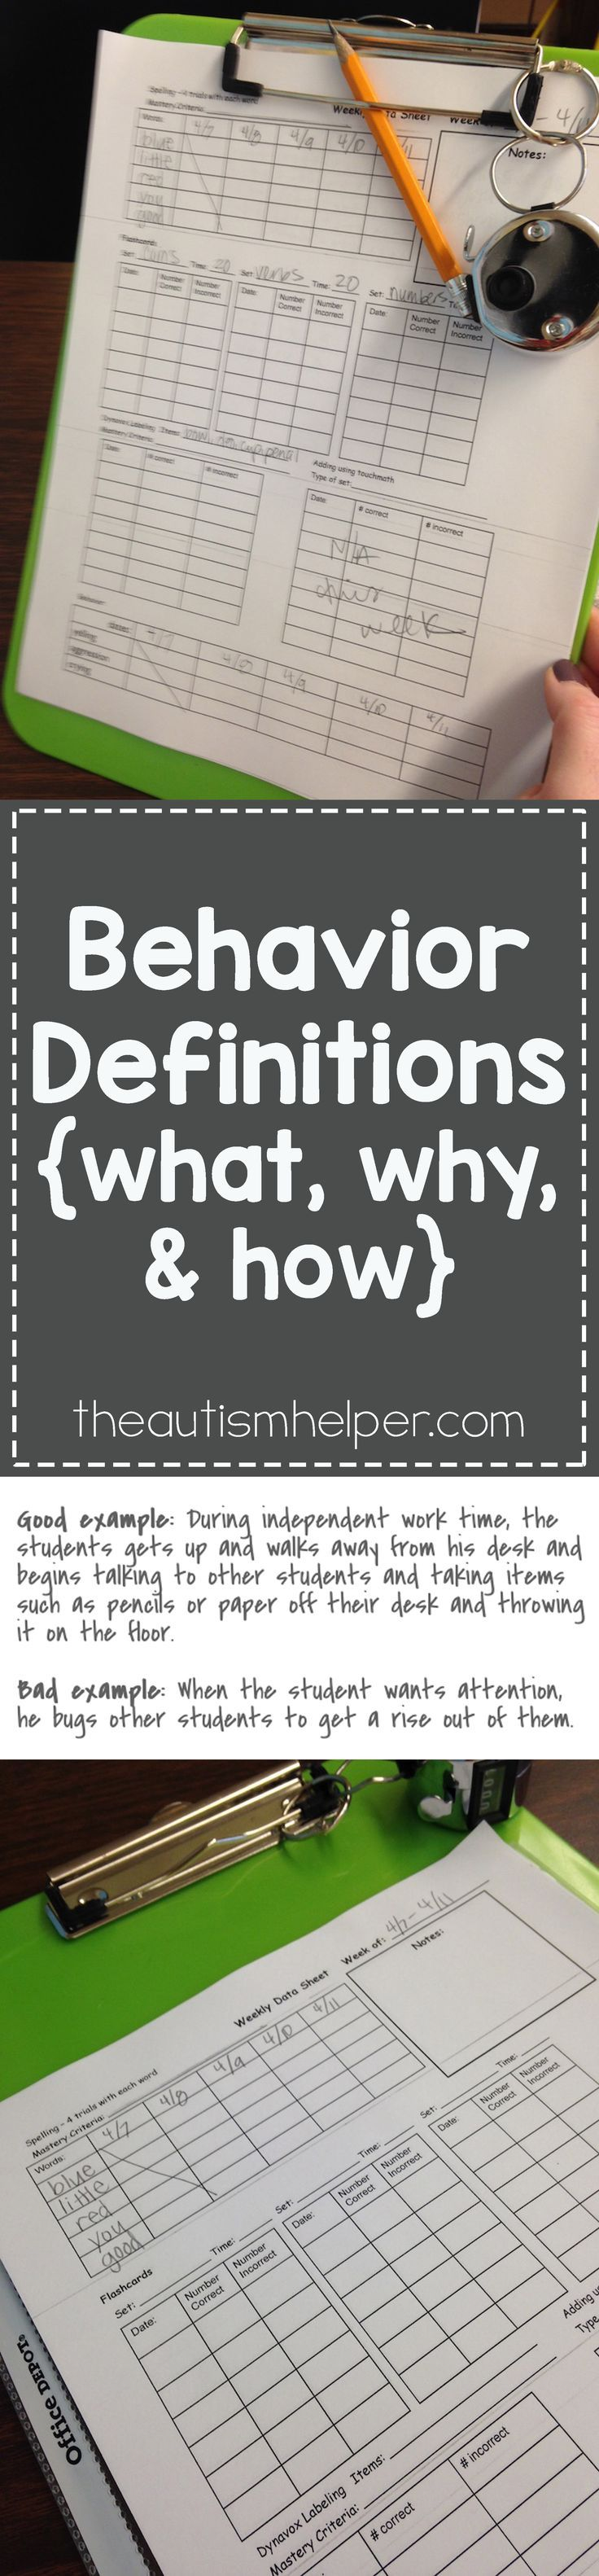 Because behavior is so subjective - we need to create & write out a very specific behavior definition so behaviors are counted consistently & equally by all staff. So let's break down the specifics of making a great behavior definition! From http://theautismhelper.com #theautismhelper